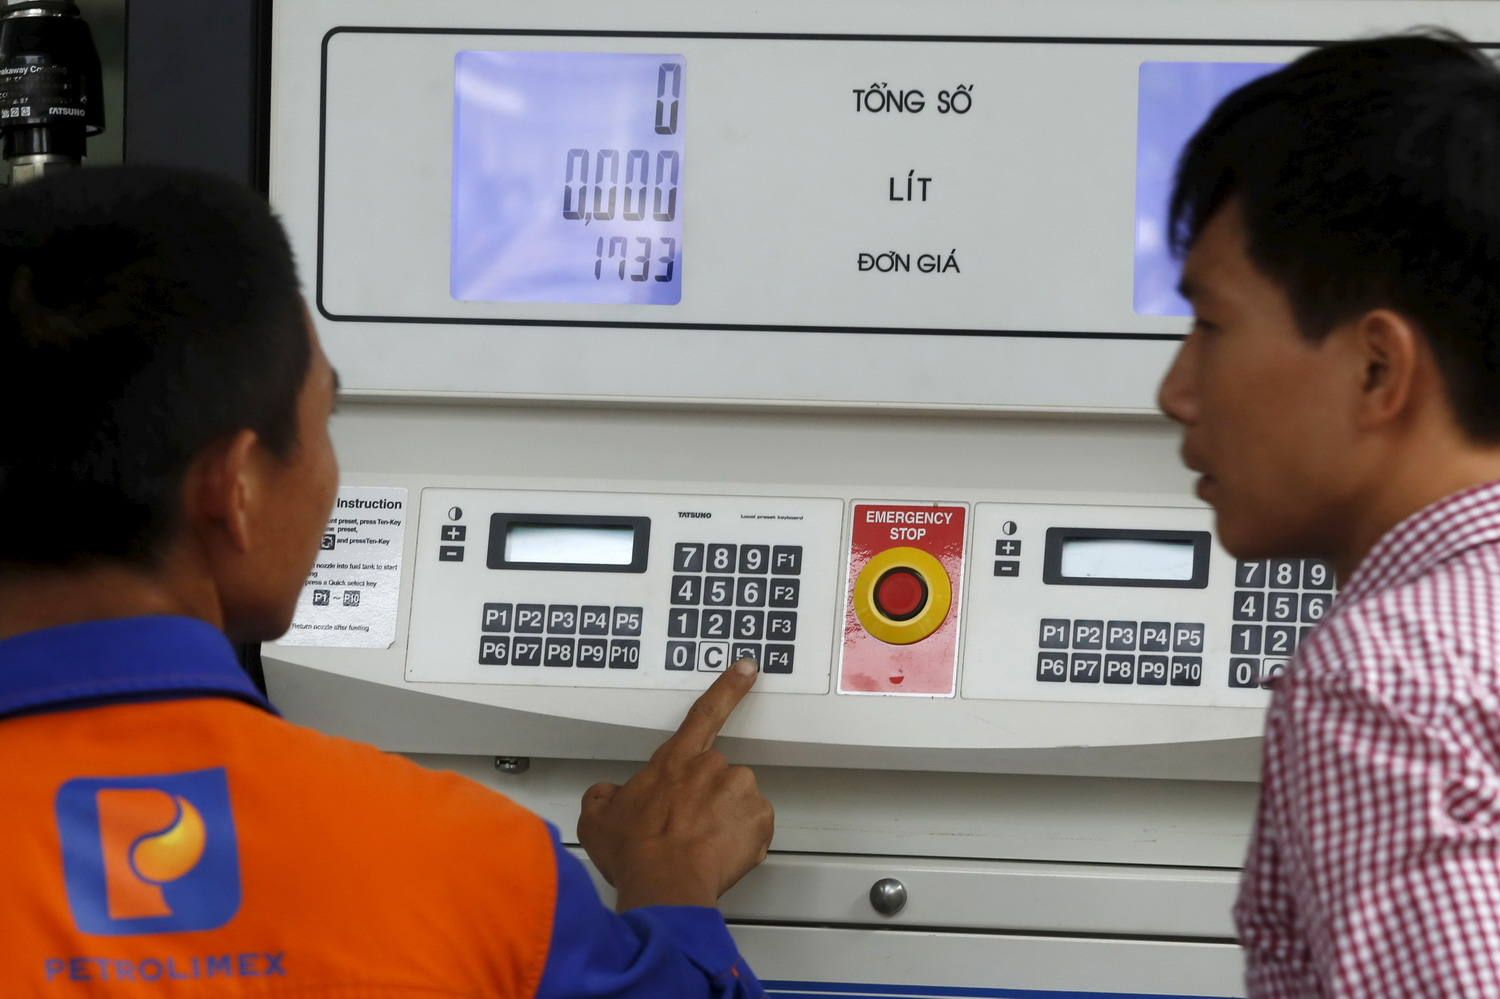 An employee keys in the price of petrol at a pump at a petrol station in Hanoi, Vietnam September 3, 2015. Photo: Reuters/Kham